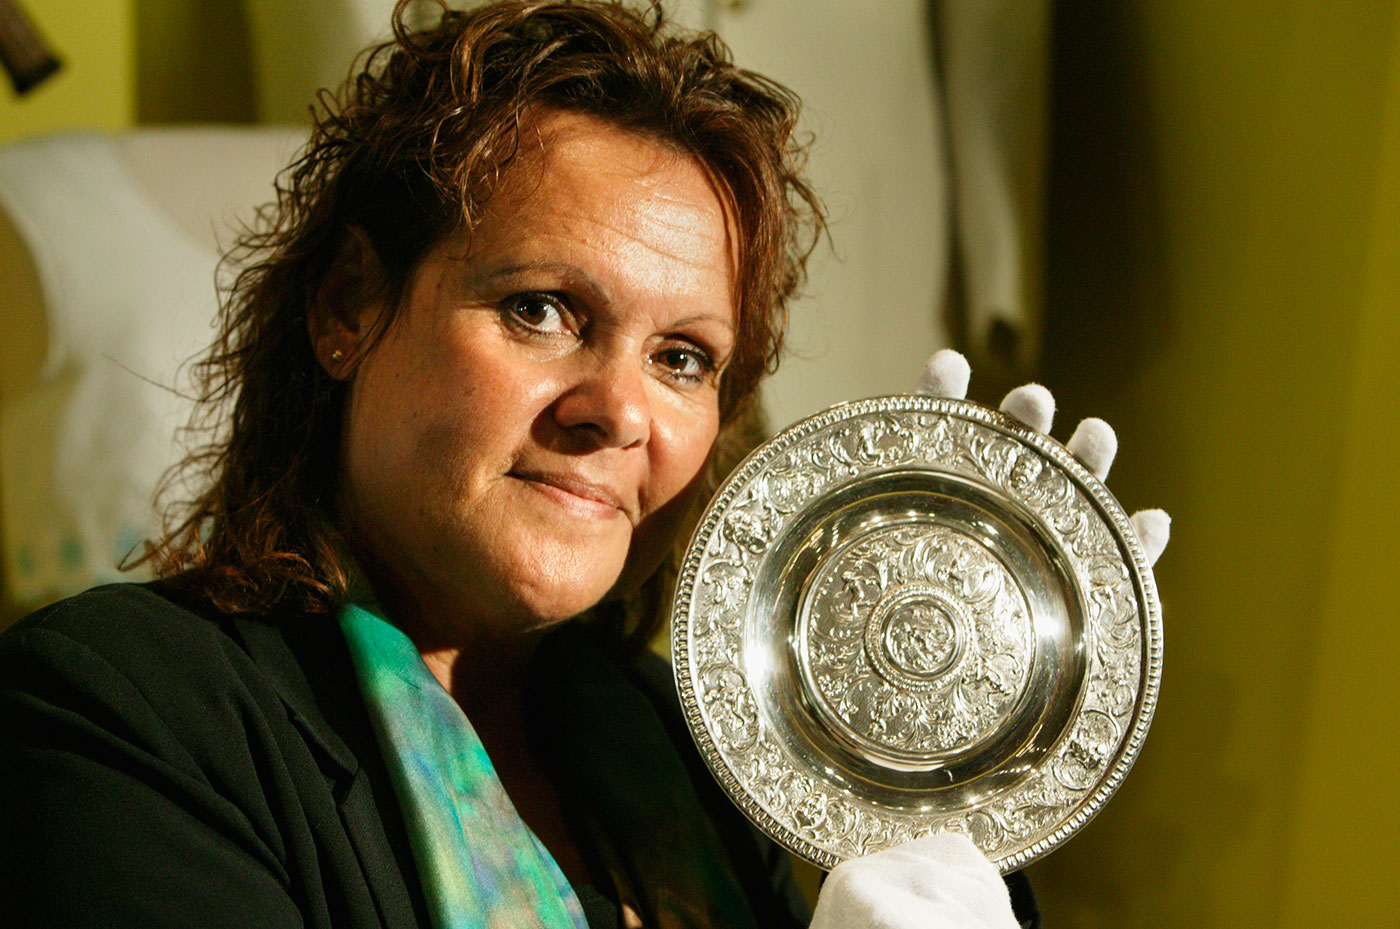 Evonne Goolagong Cawley, wearing white cotton gloves, holds a small silver plate. - click to view larger image